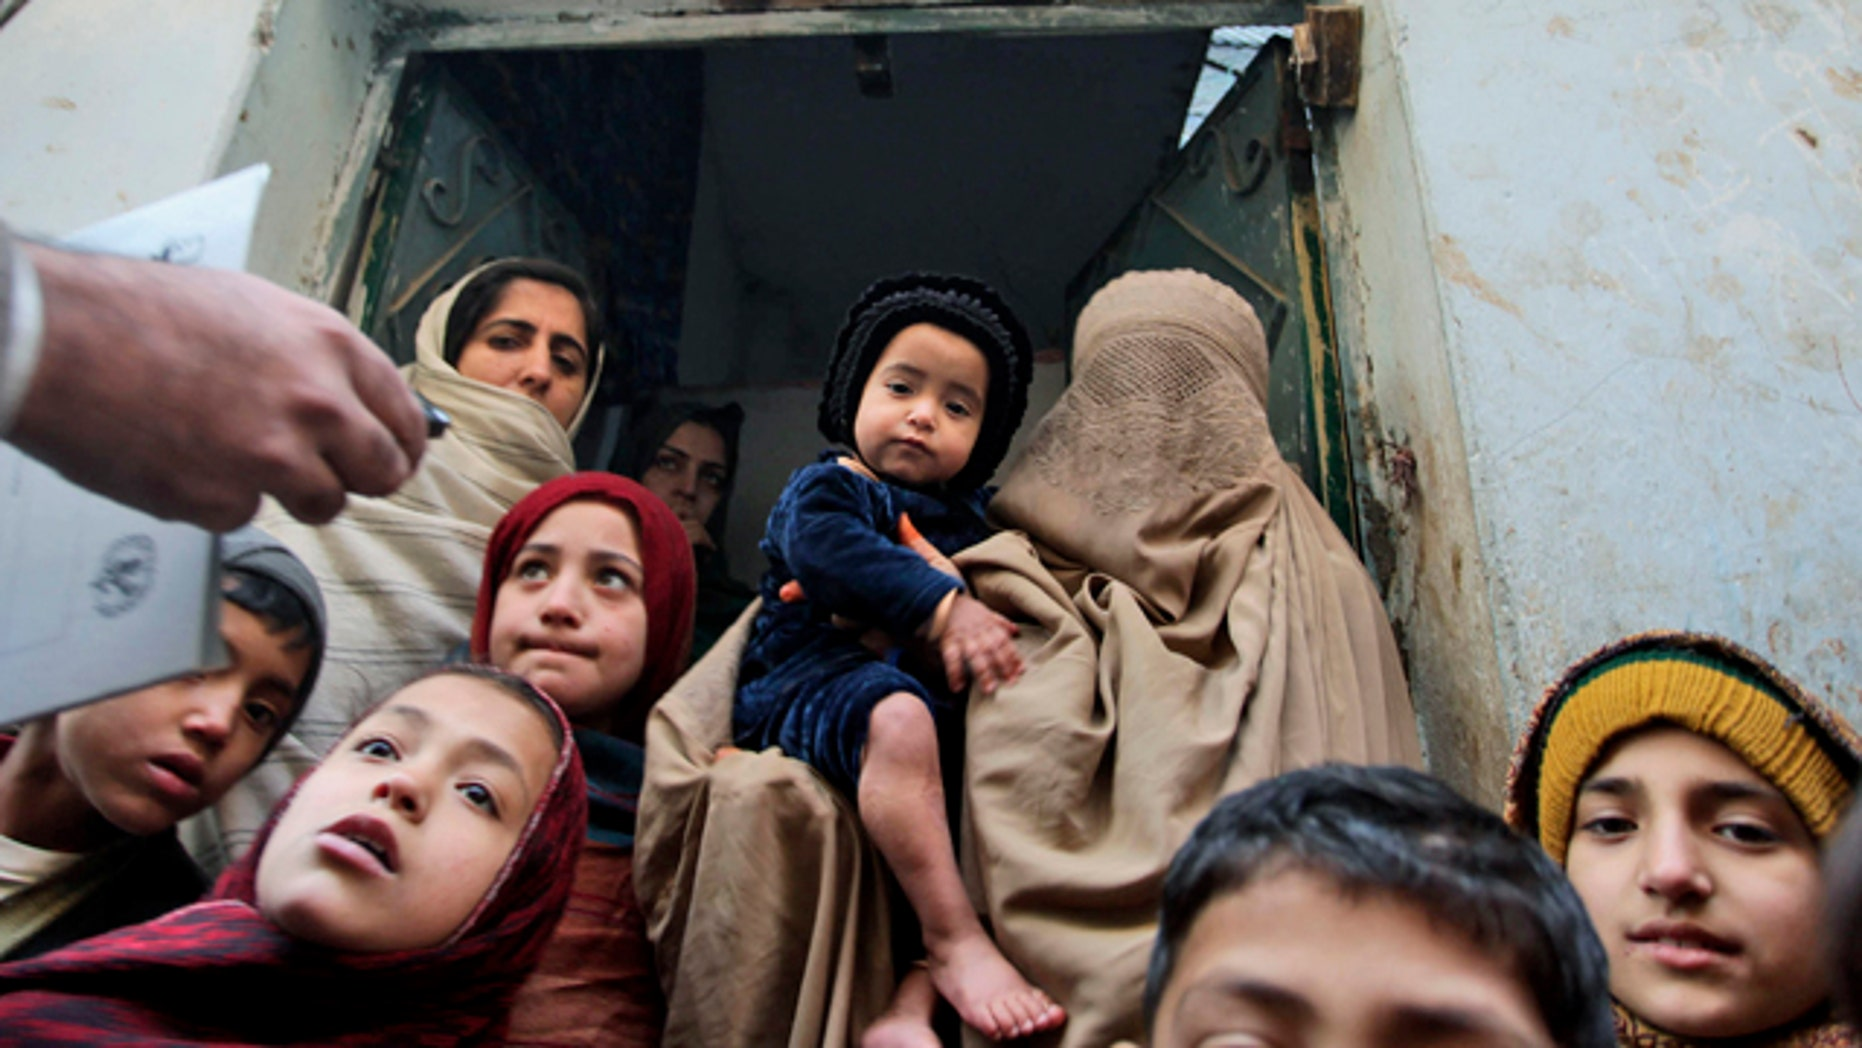 In this Dec. 28, 2010 file photo, a Pakistani health worker, left, visits families to inform them on polio in Peshawar, Pakistan. In his 2009 speech to the Muslim world, President Obama announced a new effort to eradicate polio, which persists in three Muslim countries.